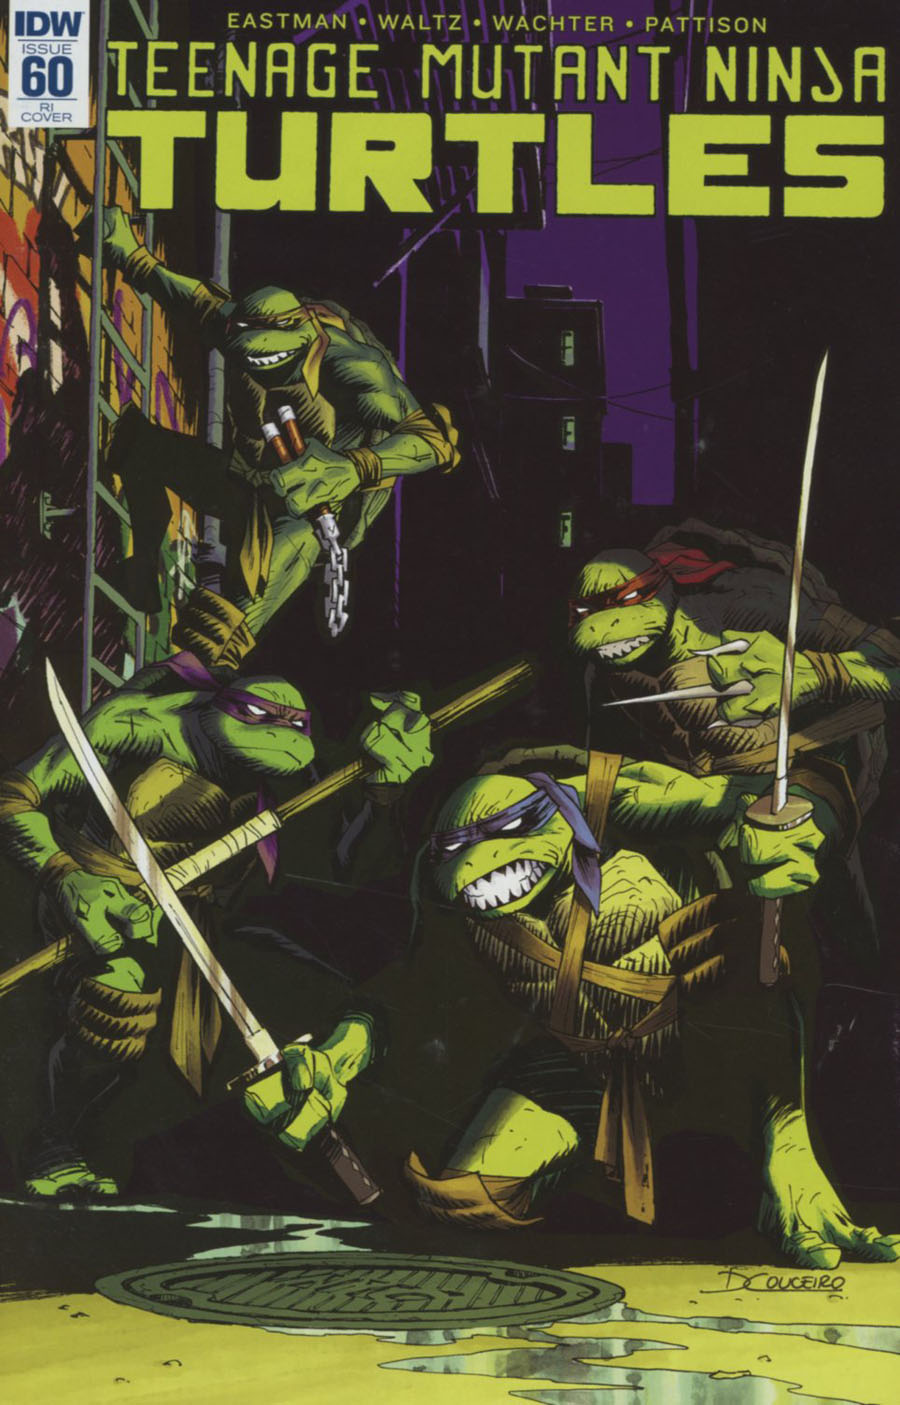 Teenage Mutant Ninja Turtles Vol 5 #60 Cover C Incentive Damian Couceiro Variant Cover